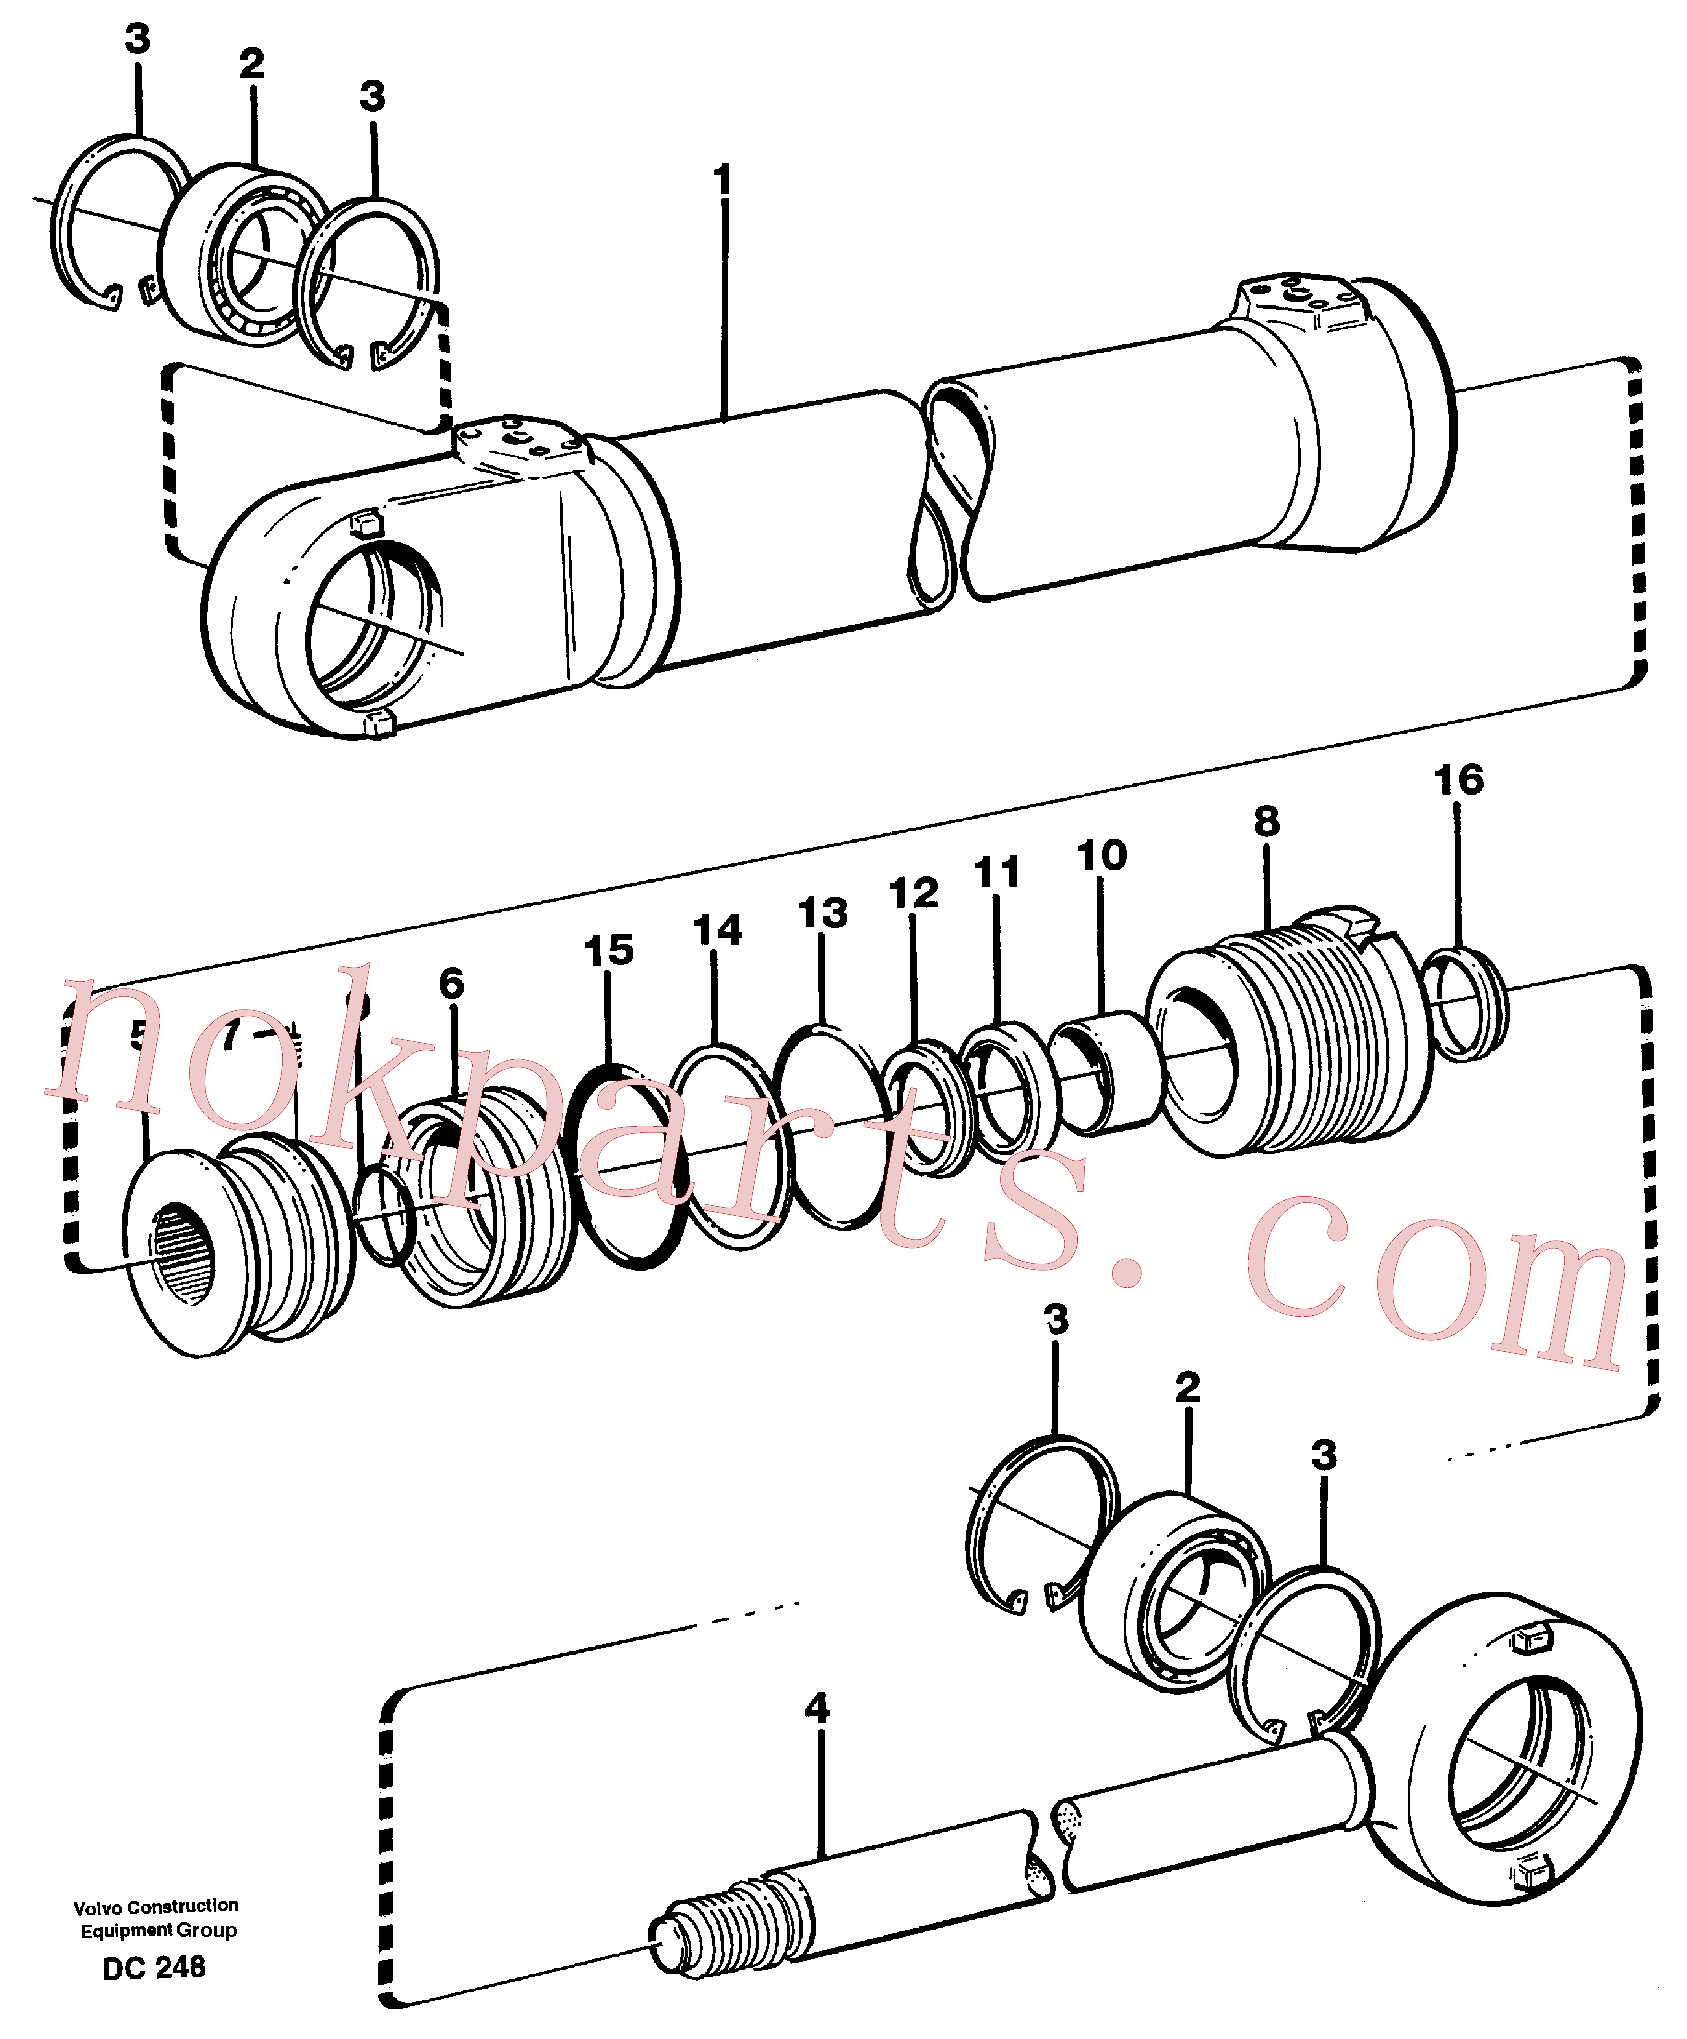 VOE11715960 for Volvo Hydraulic cylinder(DC248 assembly)